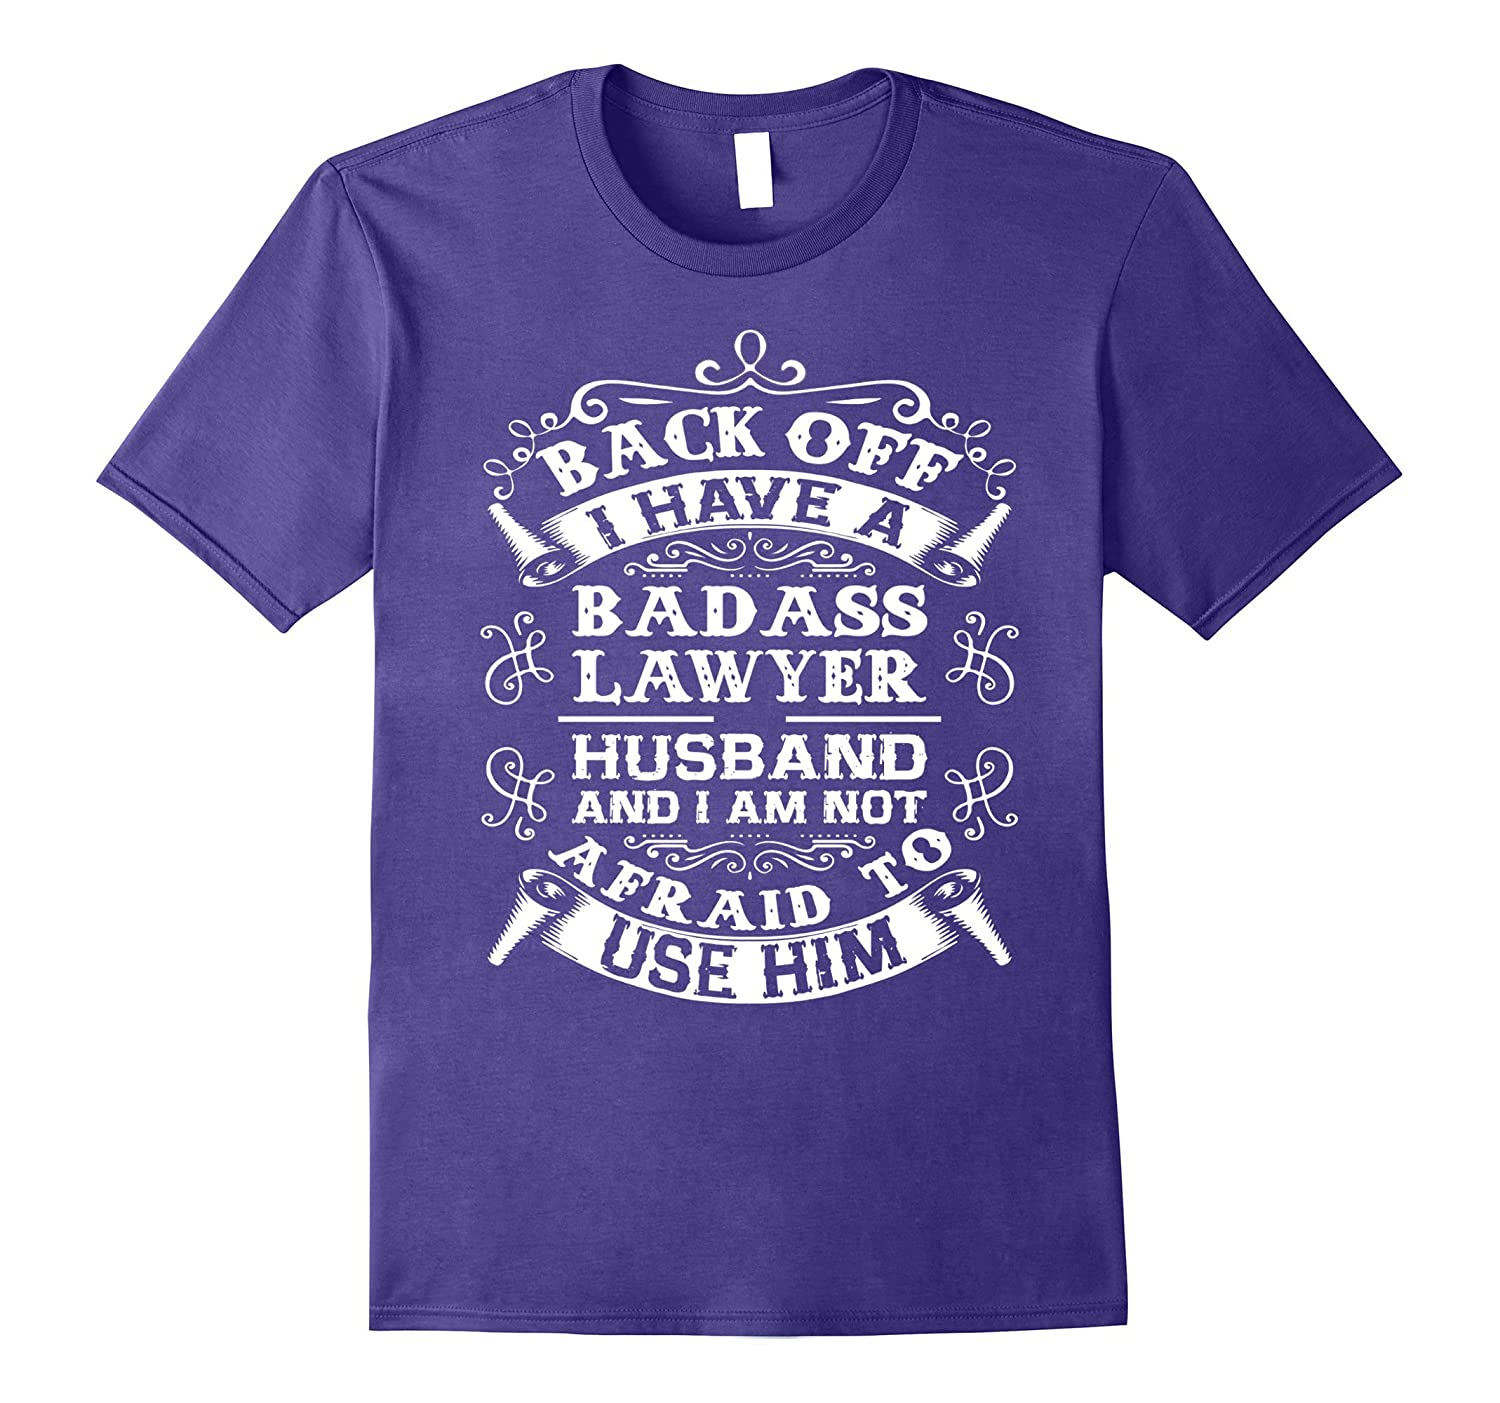 Back Off I Have A Badass Lawyer Husband T-shirt Wife Gifts-TJ